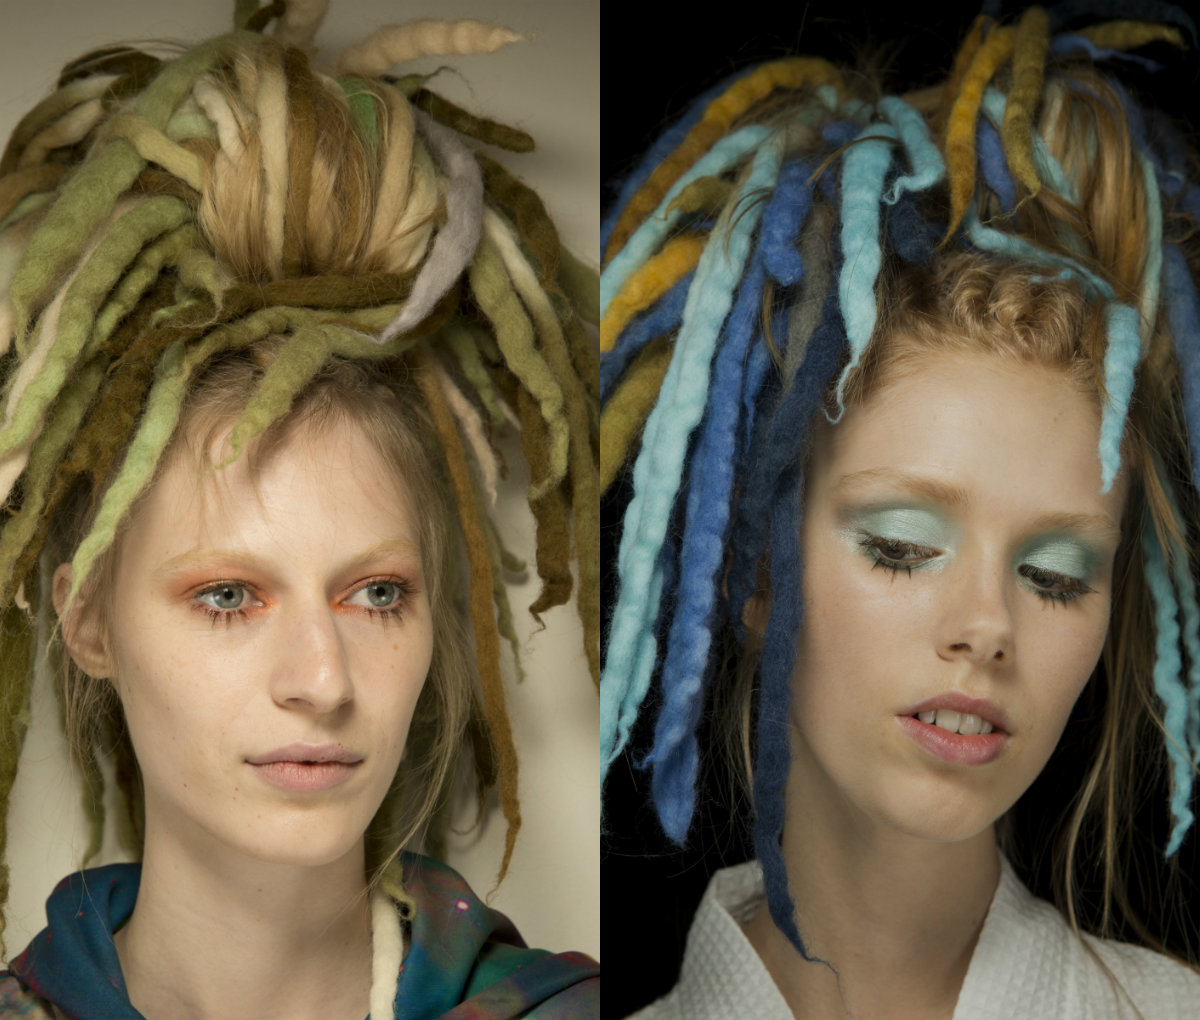 nyfw-marc-jacobs-dreadlocks-hairstyles-2017-spring-7